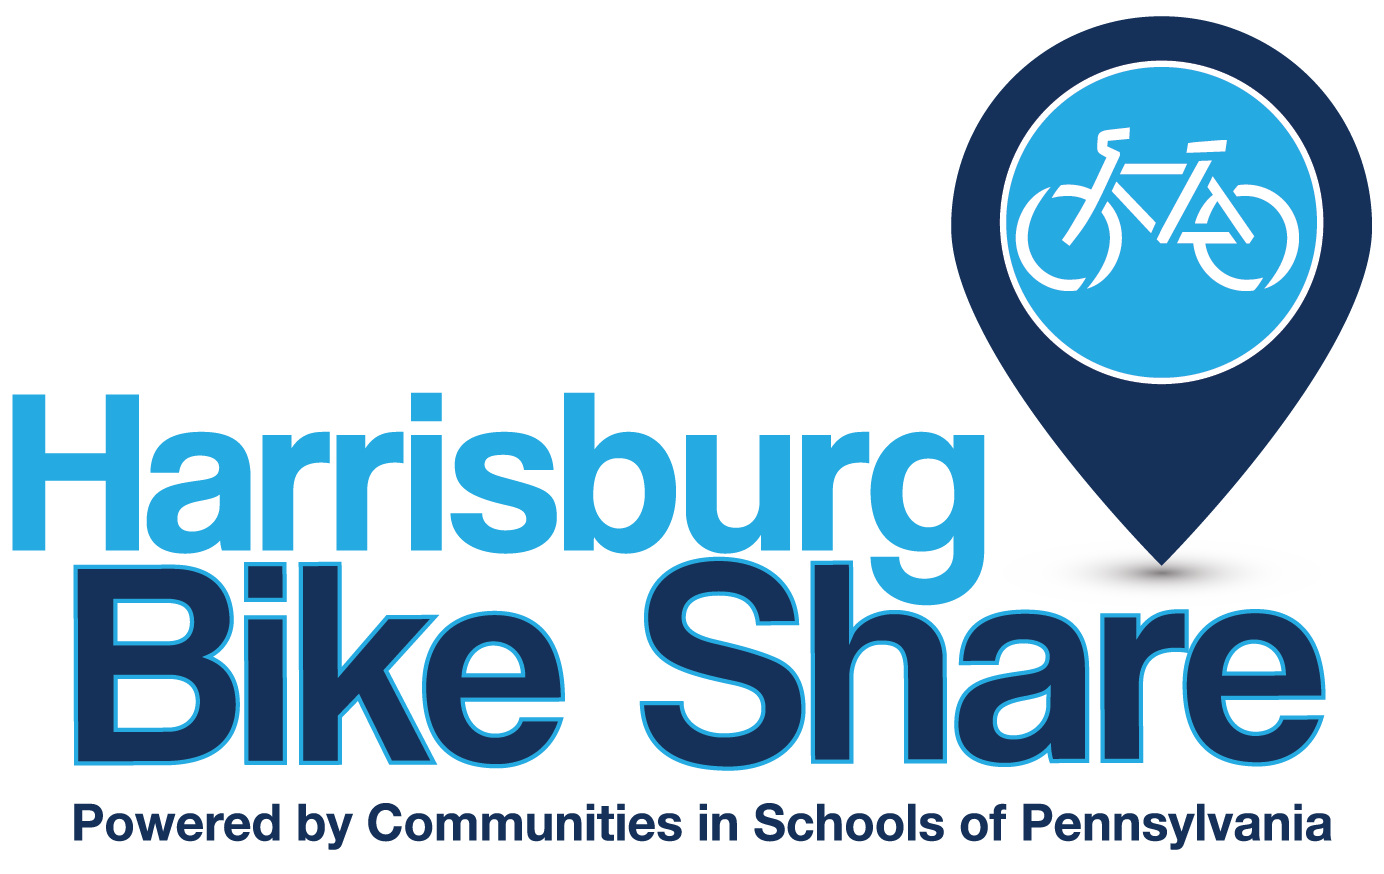 Harrisburg Bike Share